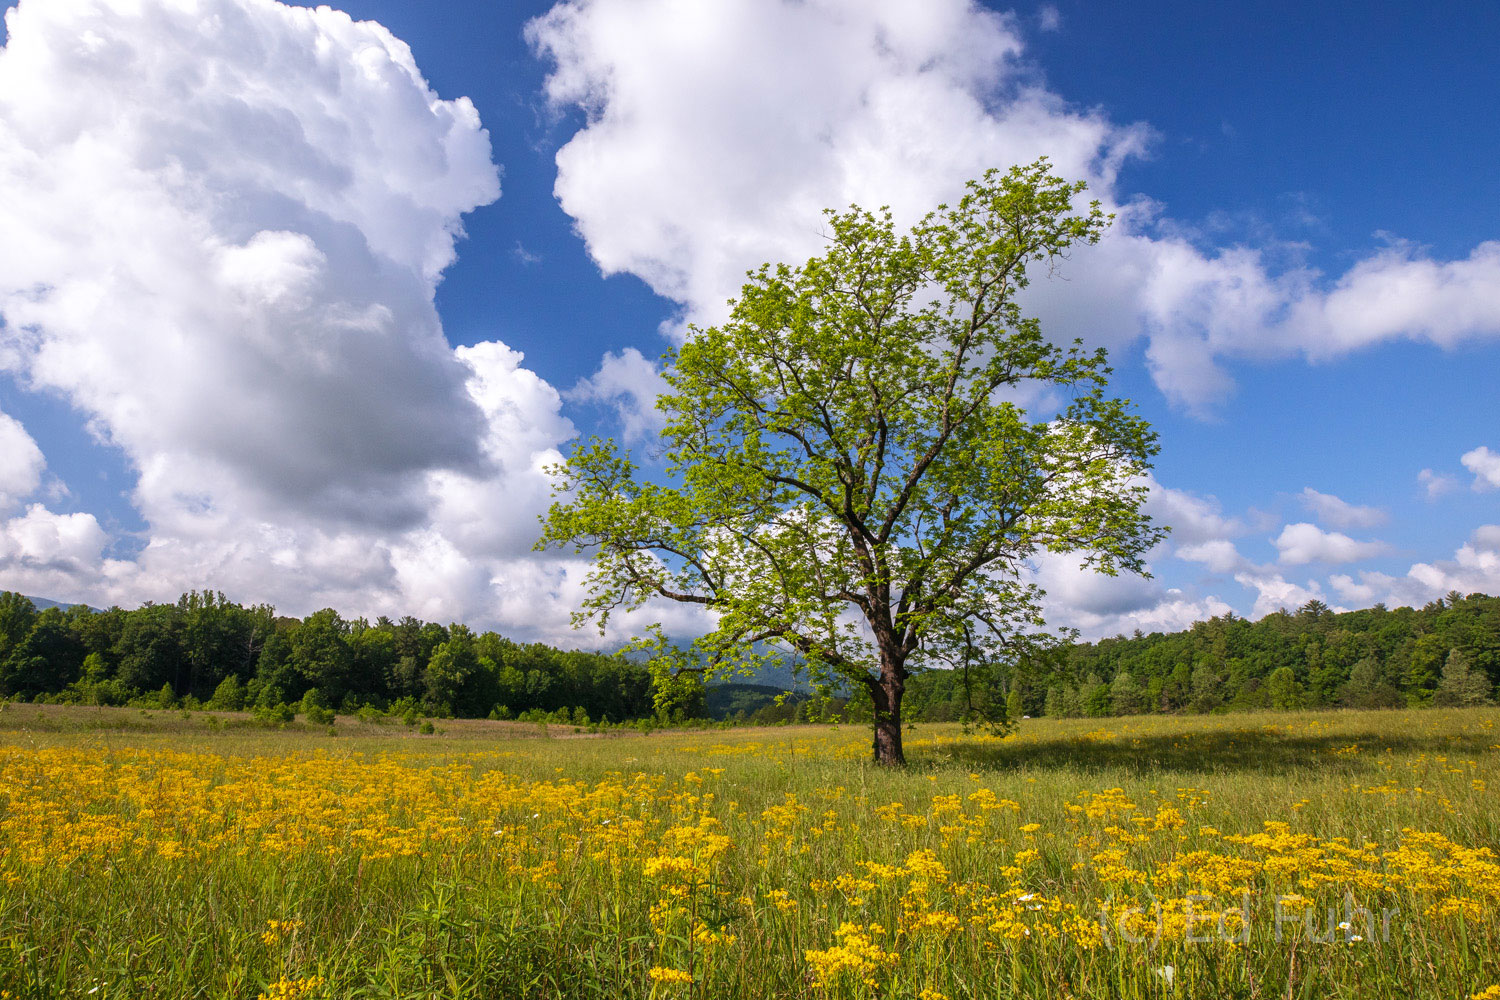 An ancient walnut that first greeted me some 50 years ago rises above a field of yellow wildflowers.   Time stands still and...